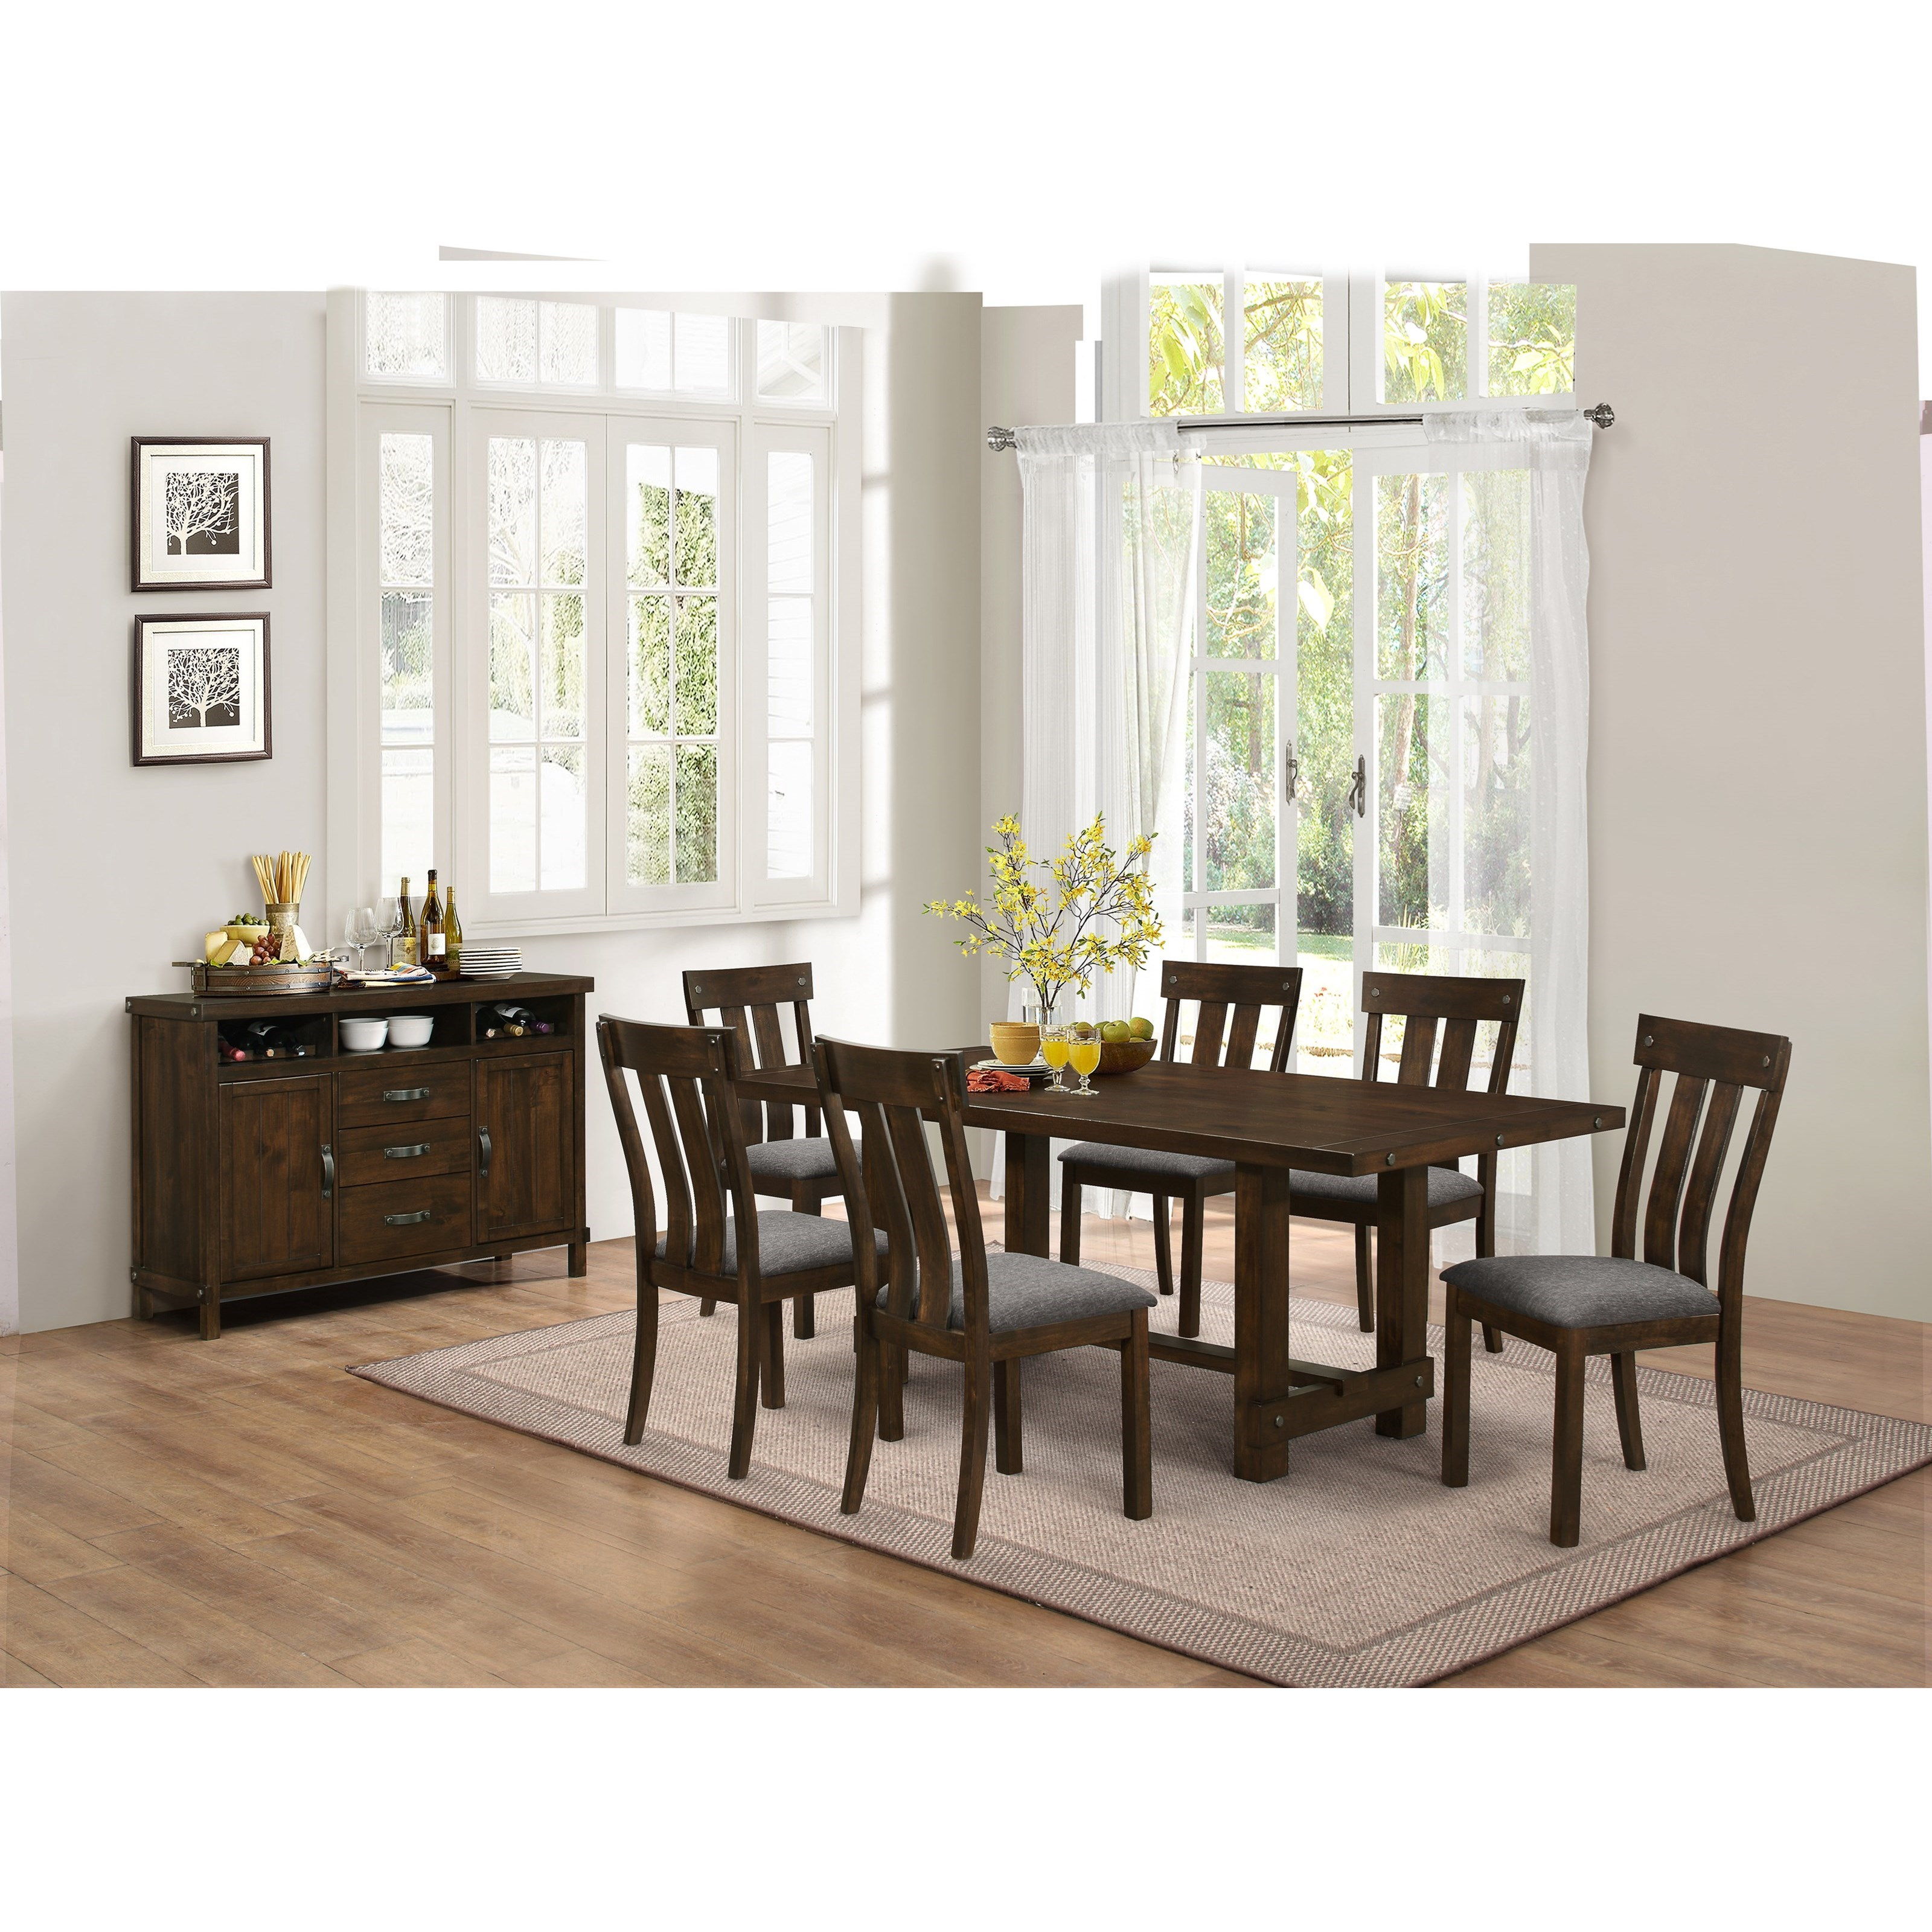 New Classic Frisco D2550 10 Trestle Dining Table With Metal Accents Del Sol Furniture Dining